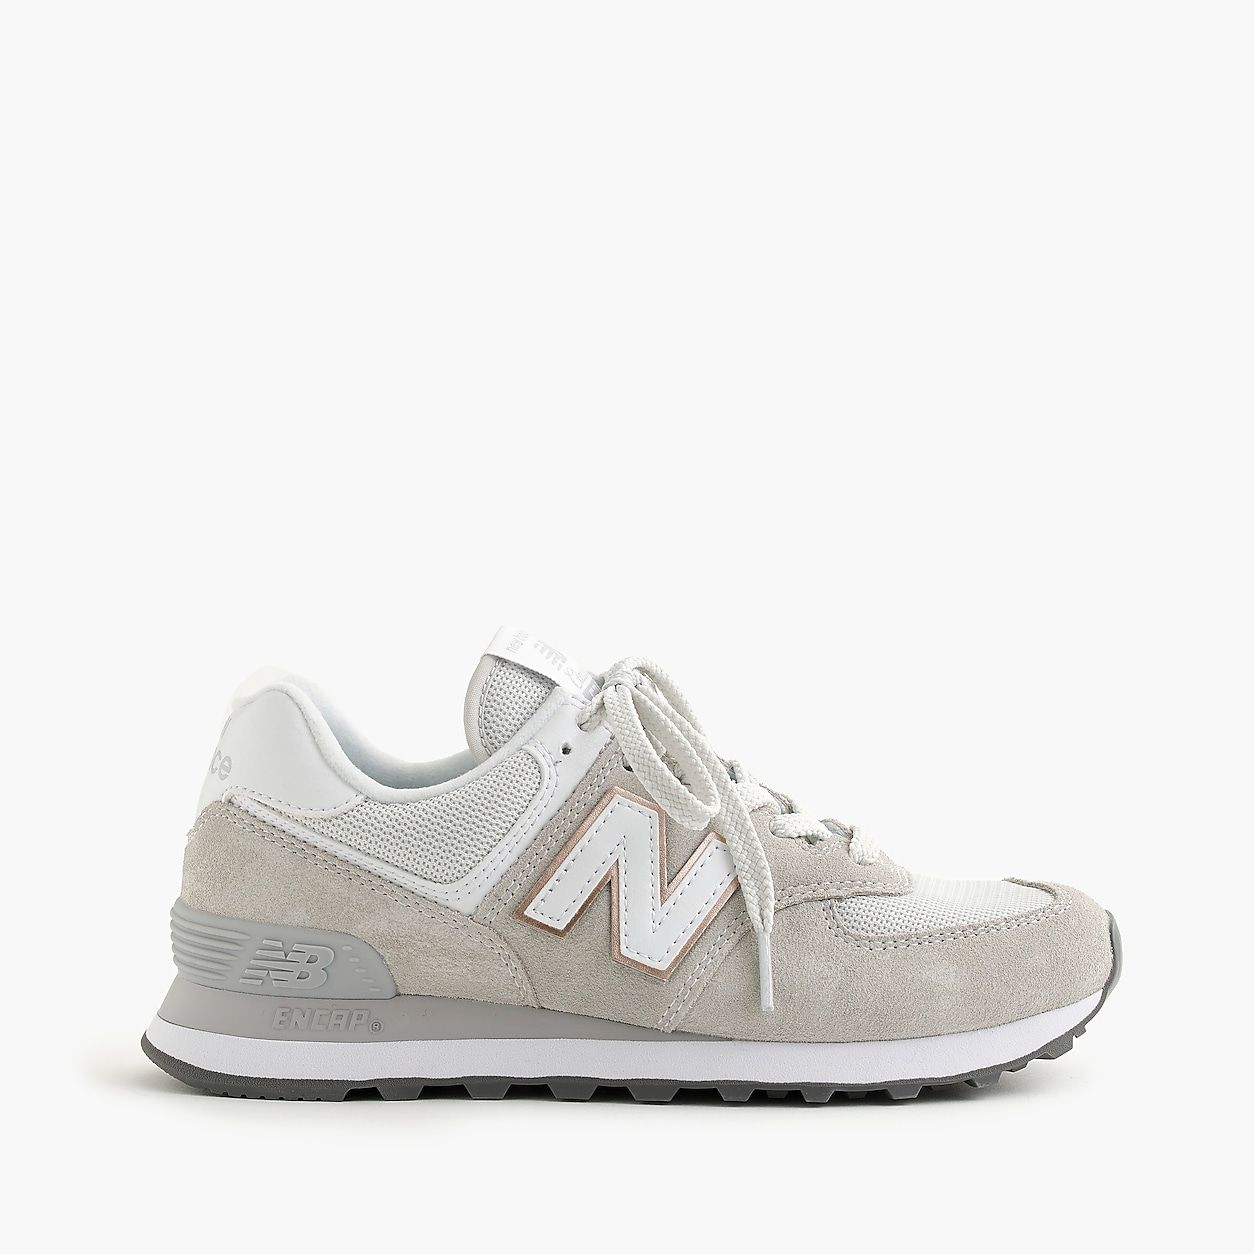 New Balance 574 Sneakers | Shoes in 2019 | Sneakers, New